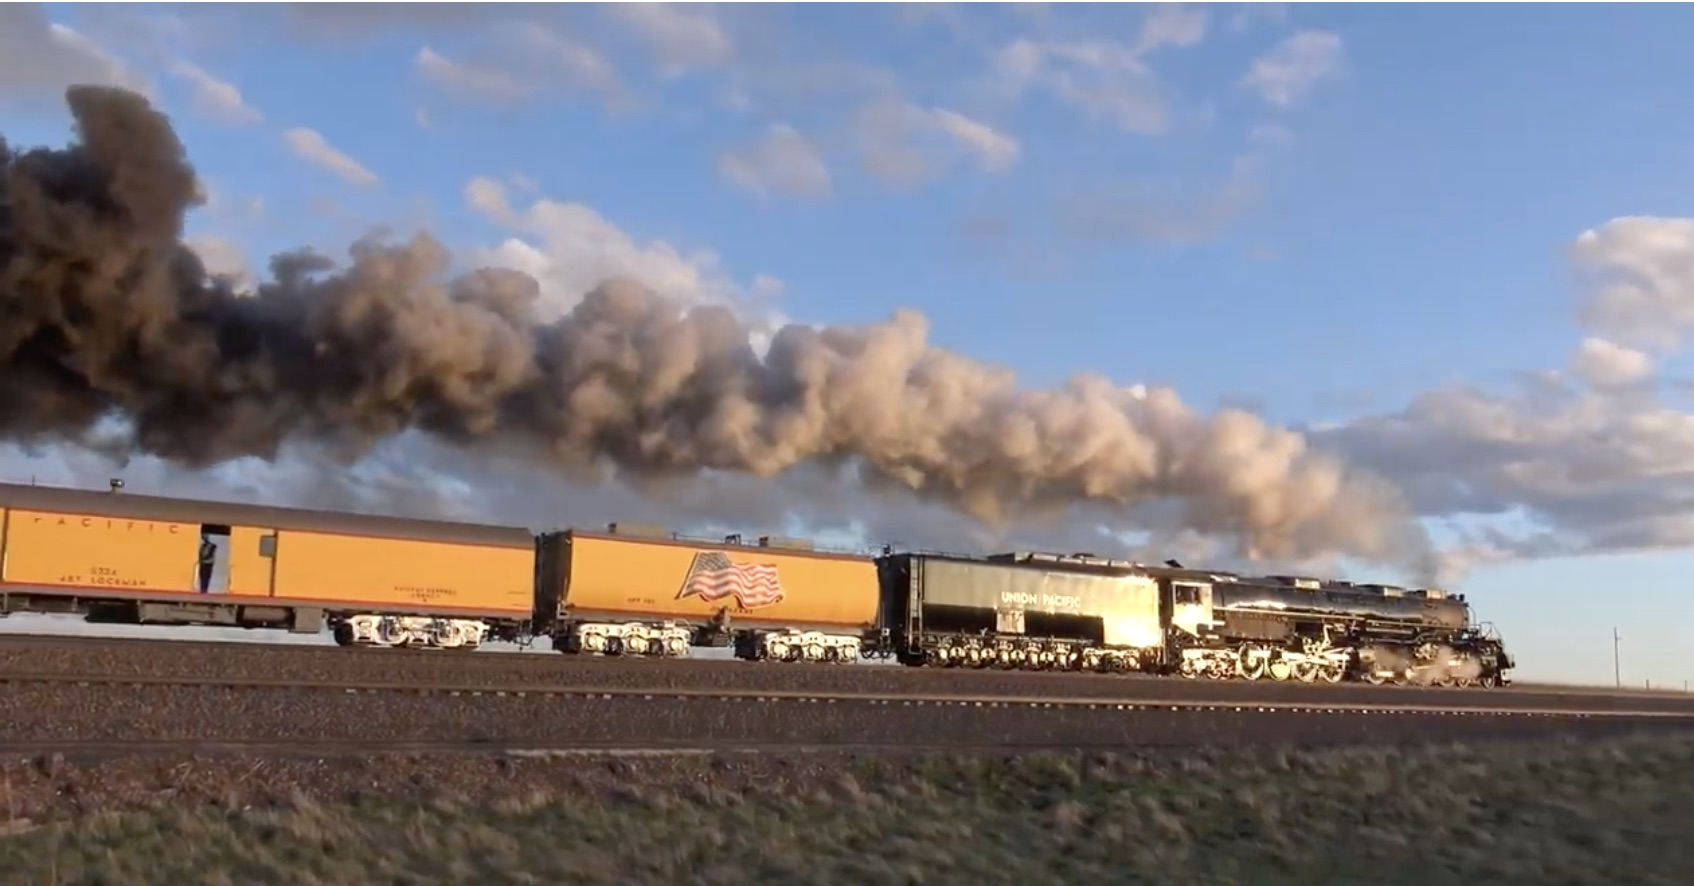 Best of 2019: The Union Pacific #4014 Big Boy and #844 Steam Locomotives In Action